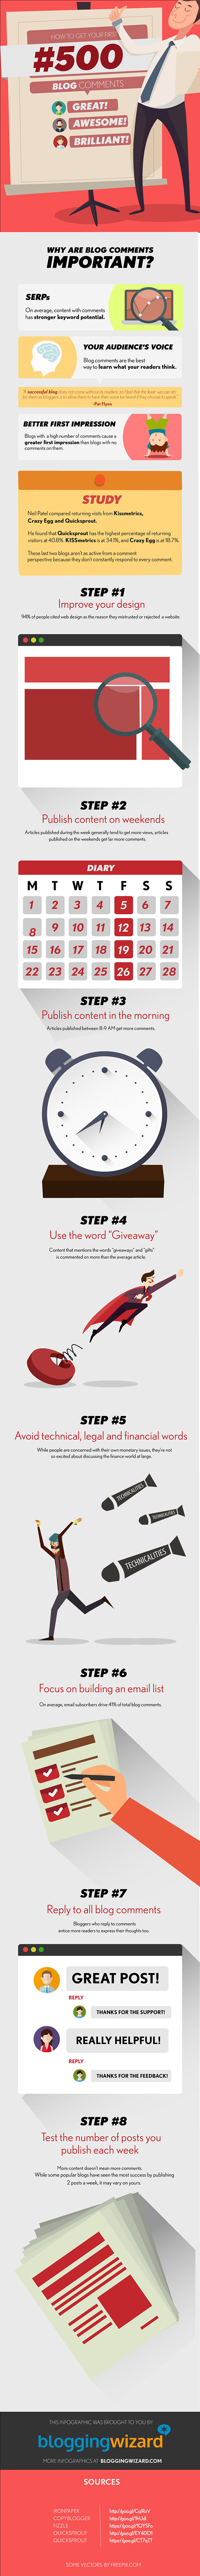 How To Get Your First 500 Blog Comments Infographic Small